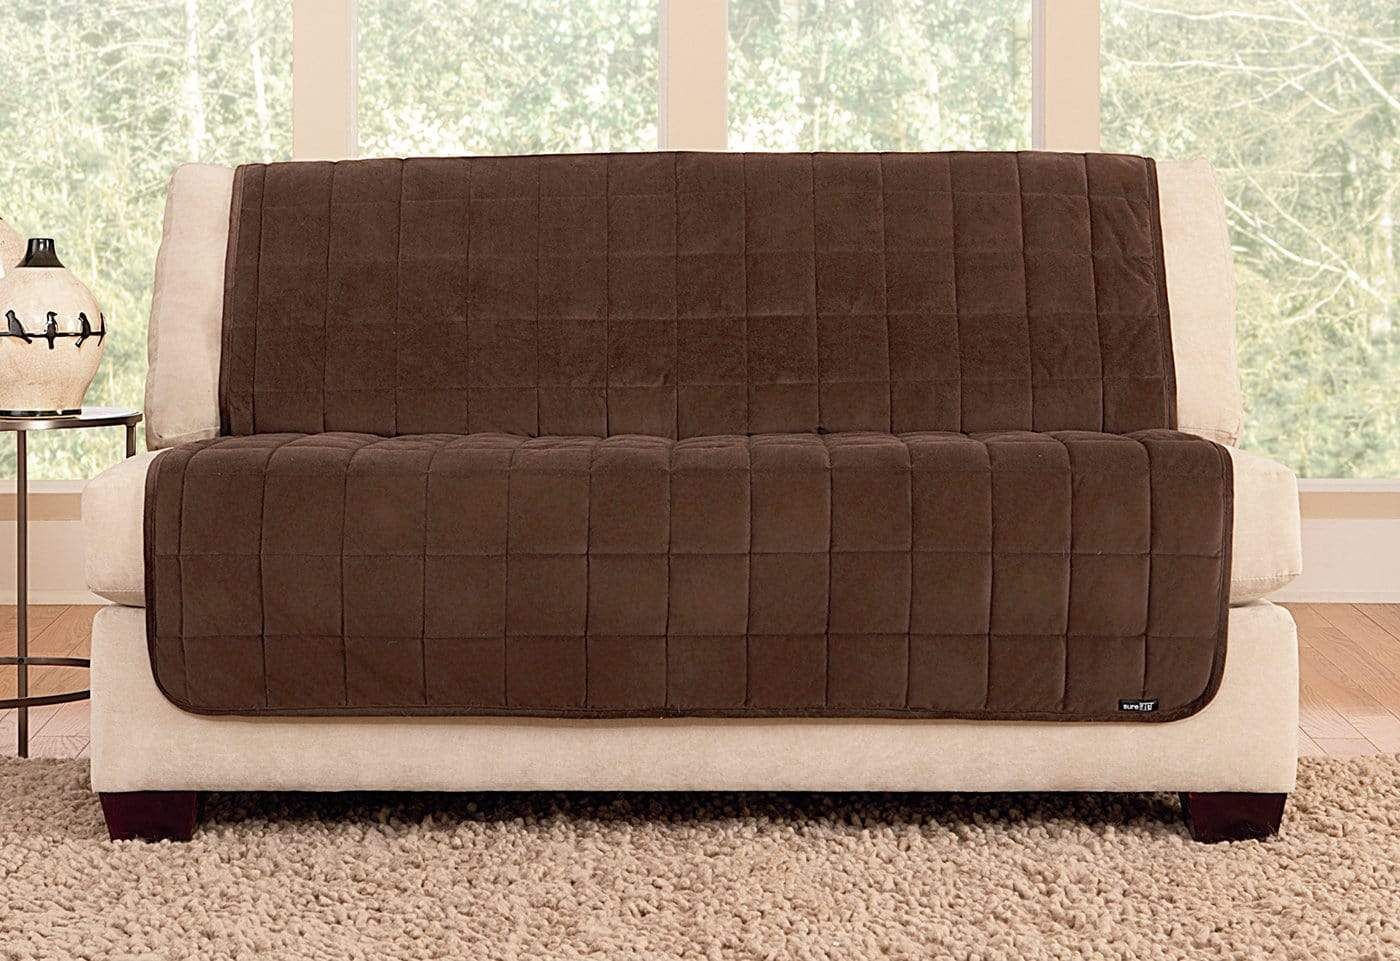 Deluxe Comfort Armless Loveseat Furniture Cover Microban® Antimicrobial Pet Furniture Cover Machine Washable - Loveseat / Chocolate